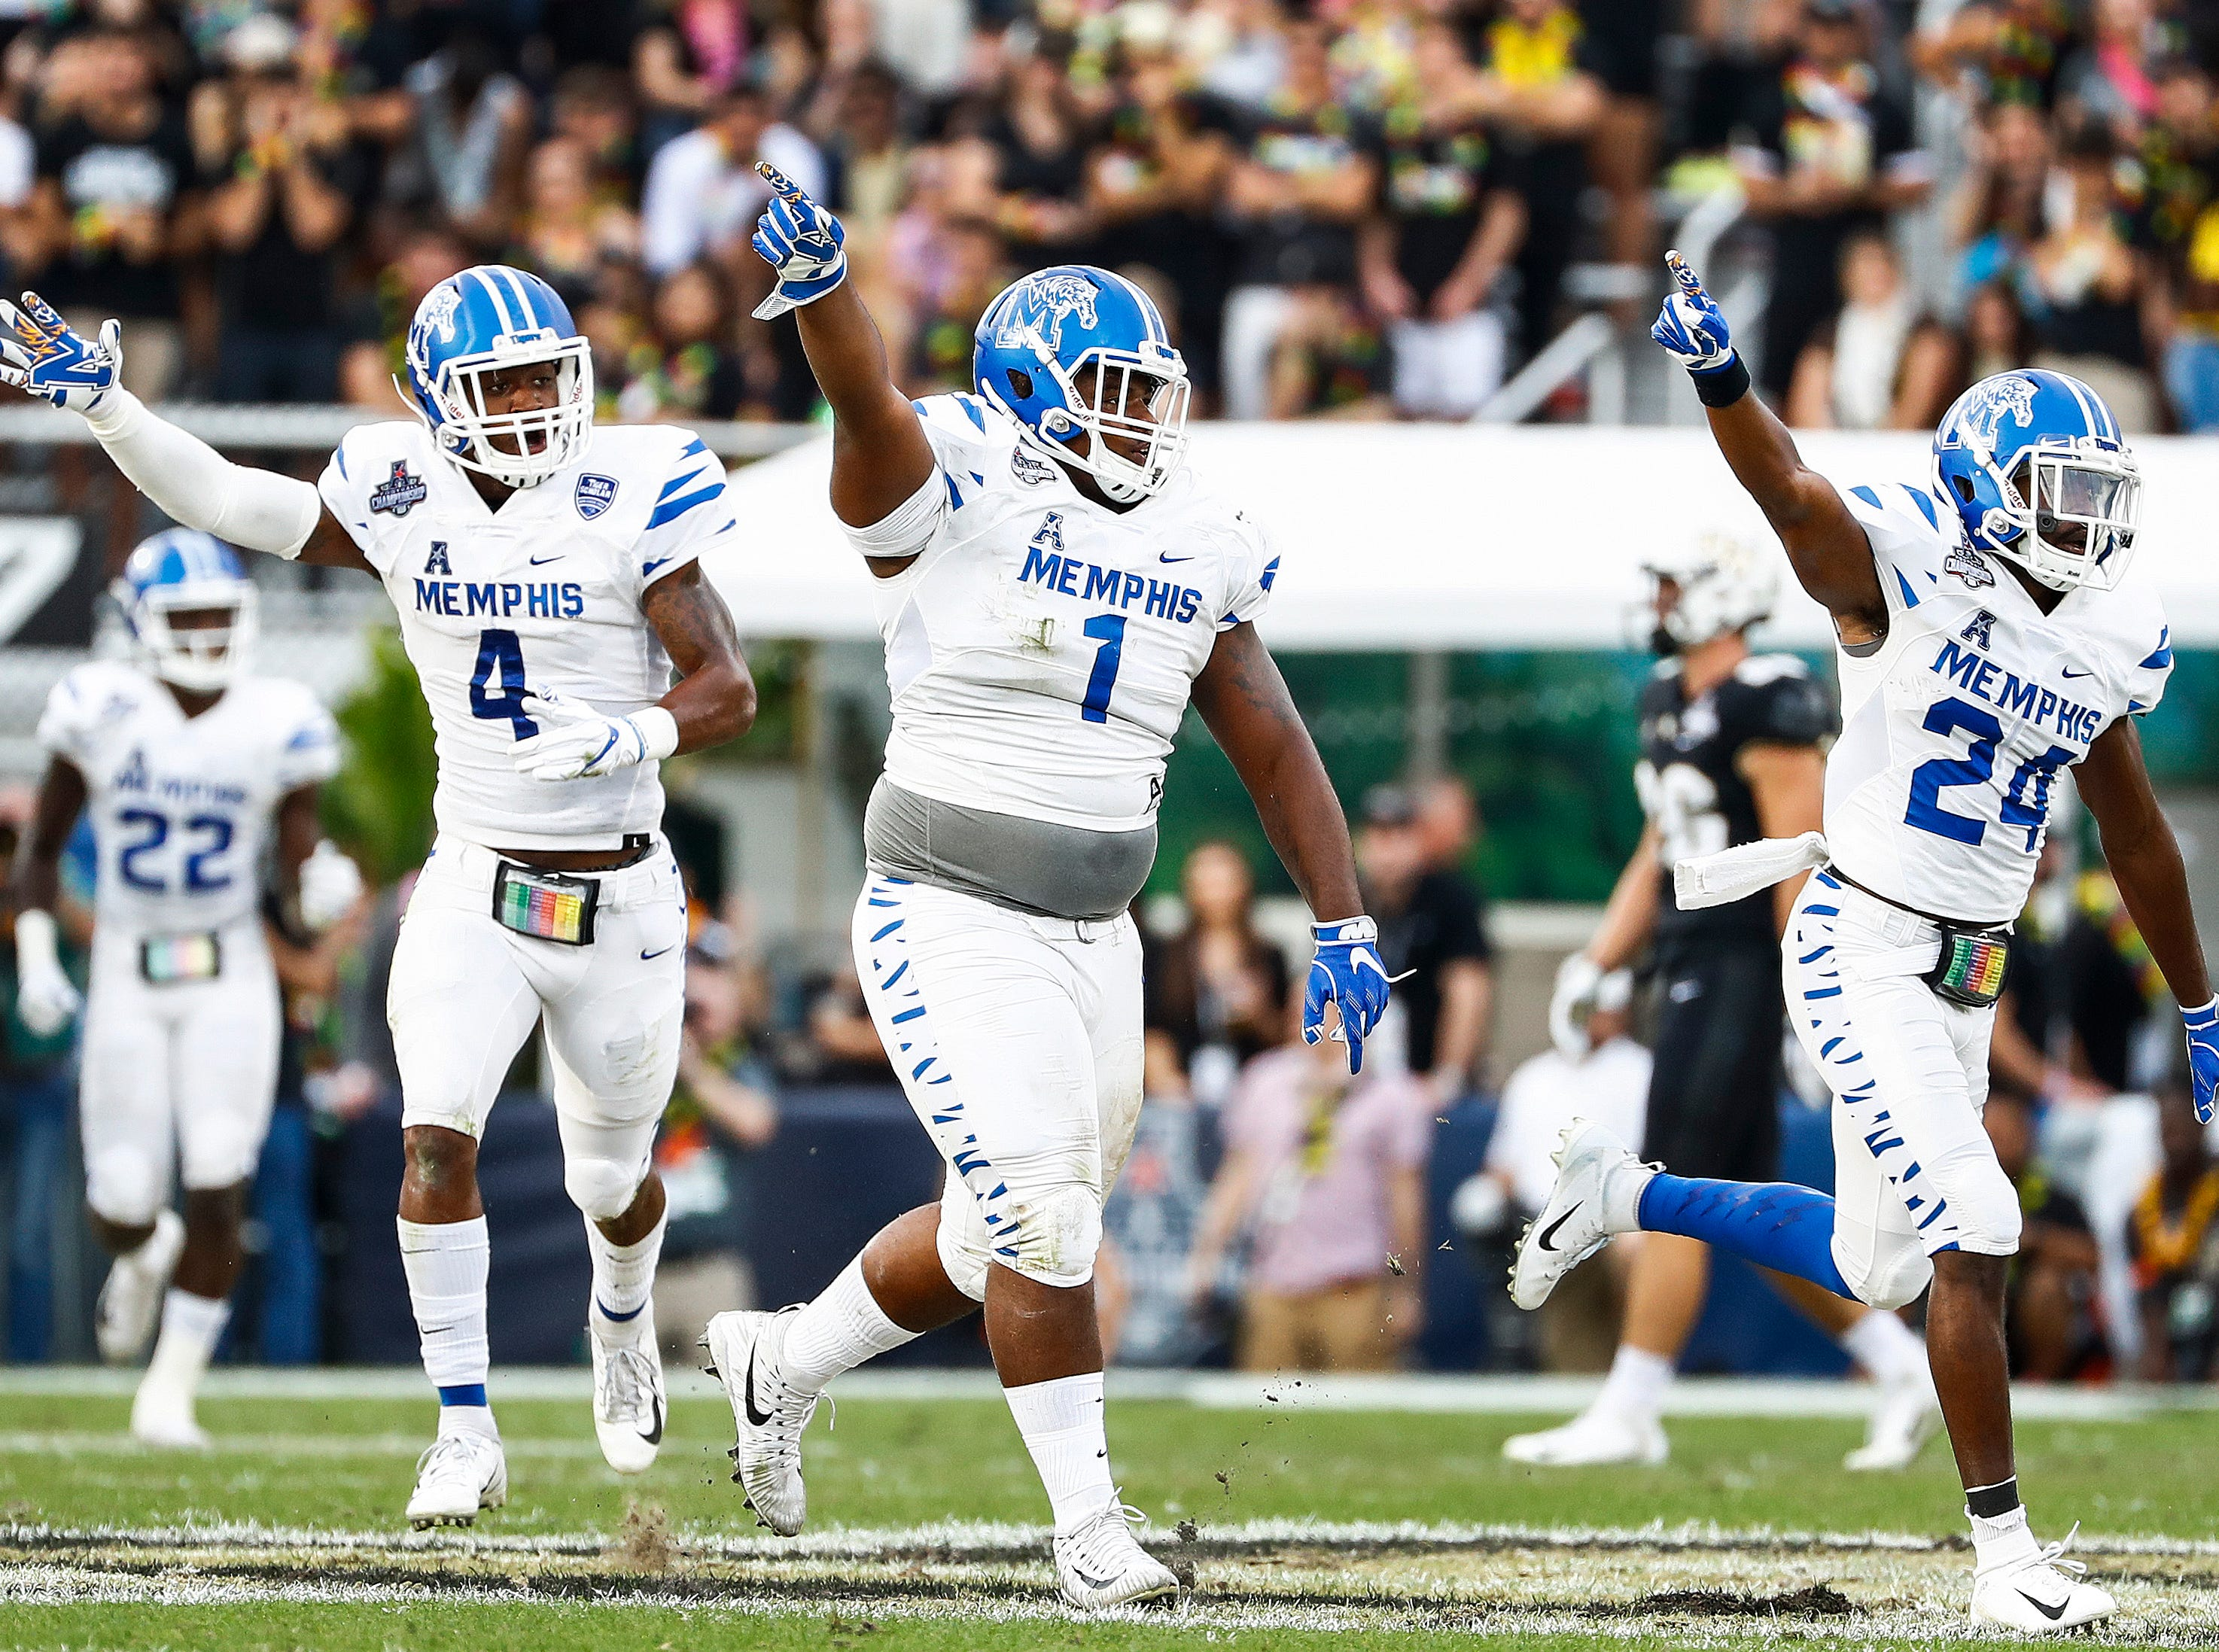 Memphis defenders (left to right) Josh Perry, O'Bryan Goodson and Tito Windham celebrate a fumble recovery against UCF during action at the AAC Championship Football game Saturday, December 1, 2018 in Orlando.